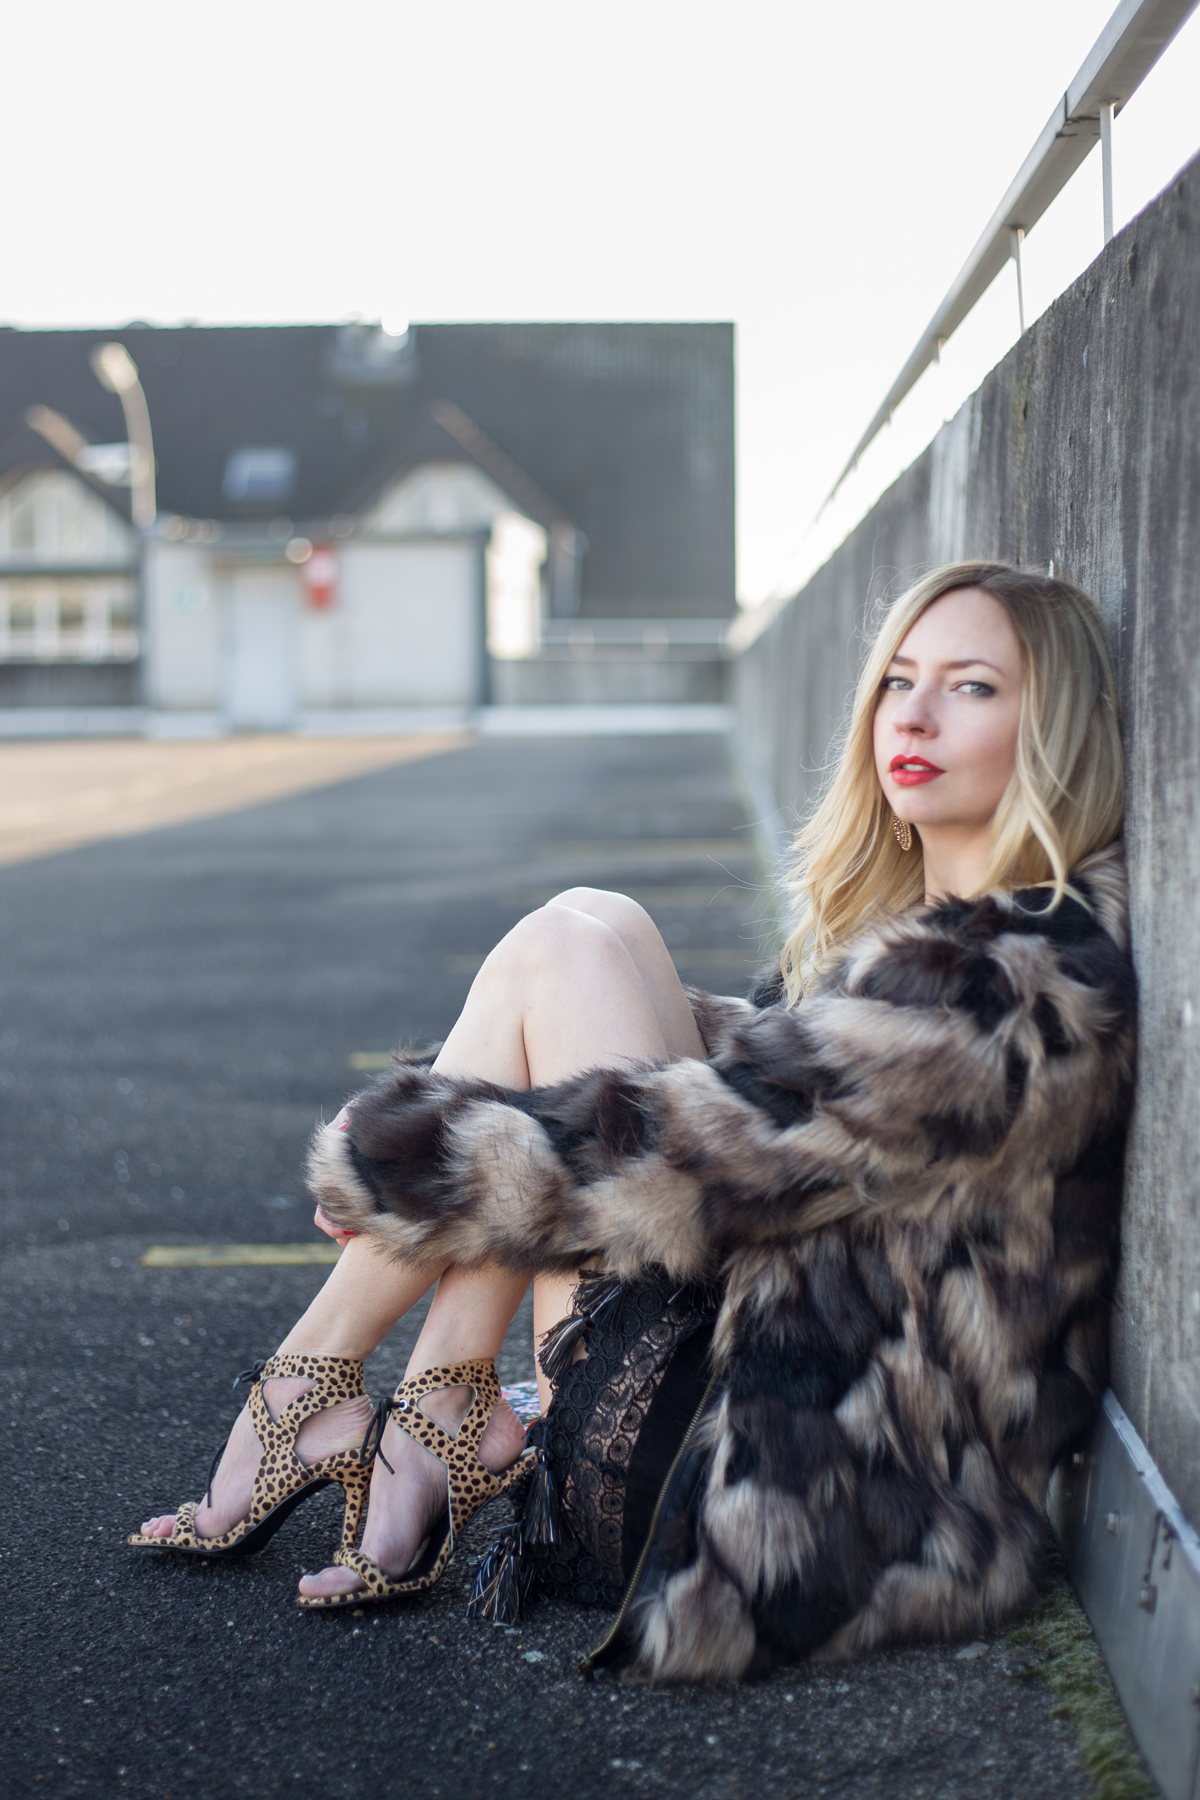 TTYA x Long Tall Sally Collection II How I met my outfit by Dana Lohmüller